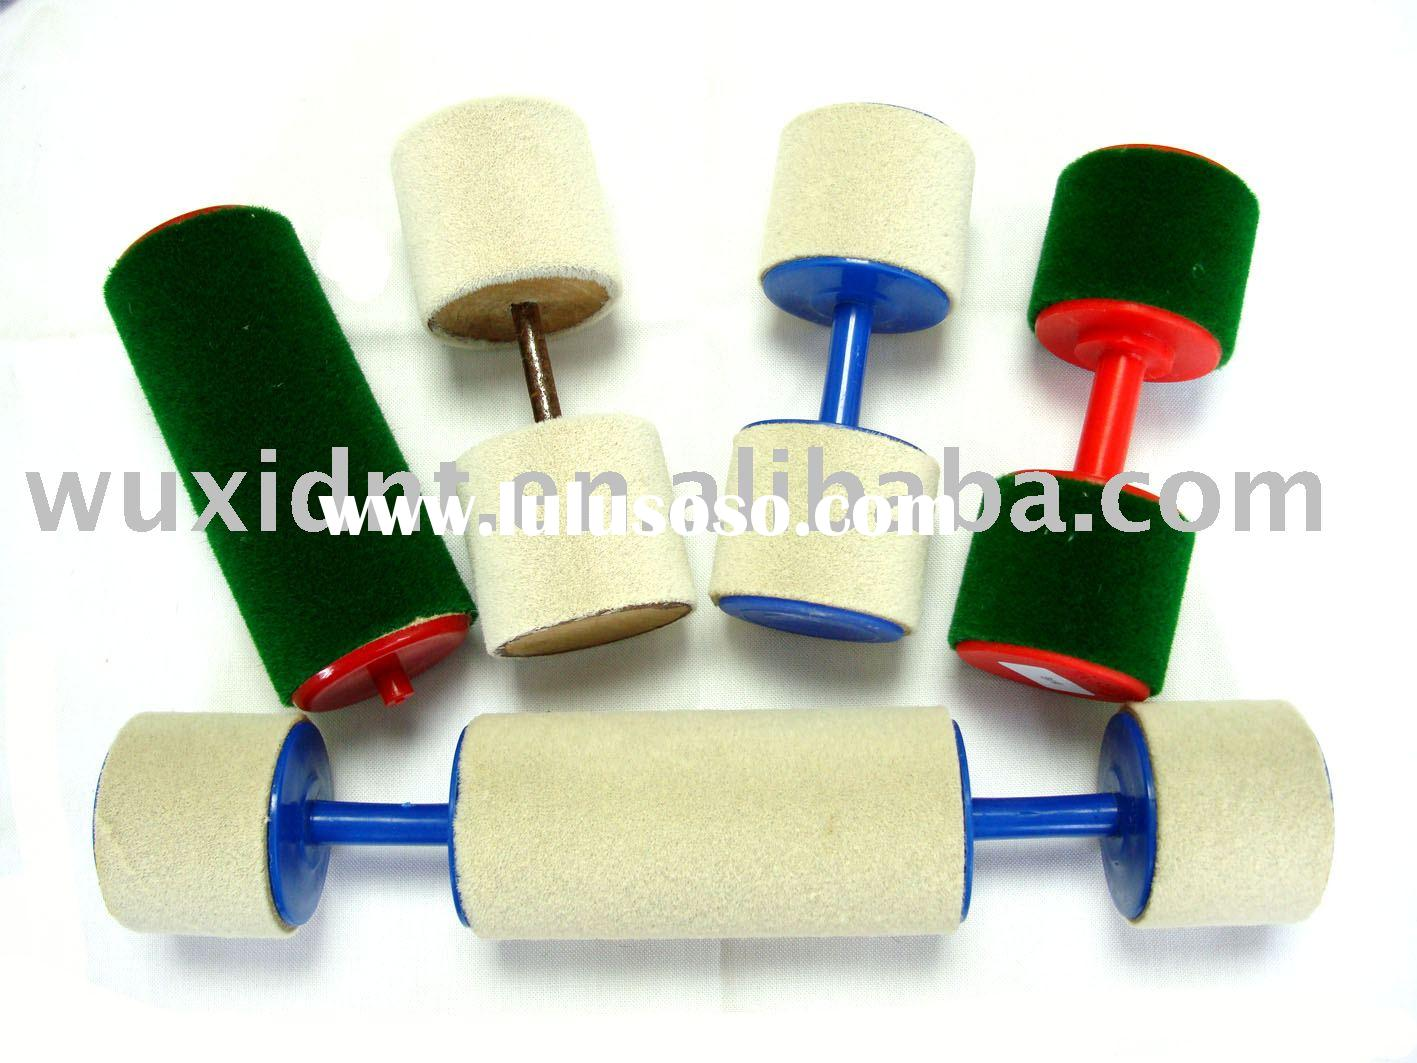 TEXTILE SPARE PARTS RING FRAME Cleaning roller for spinning